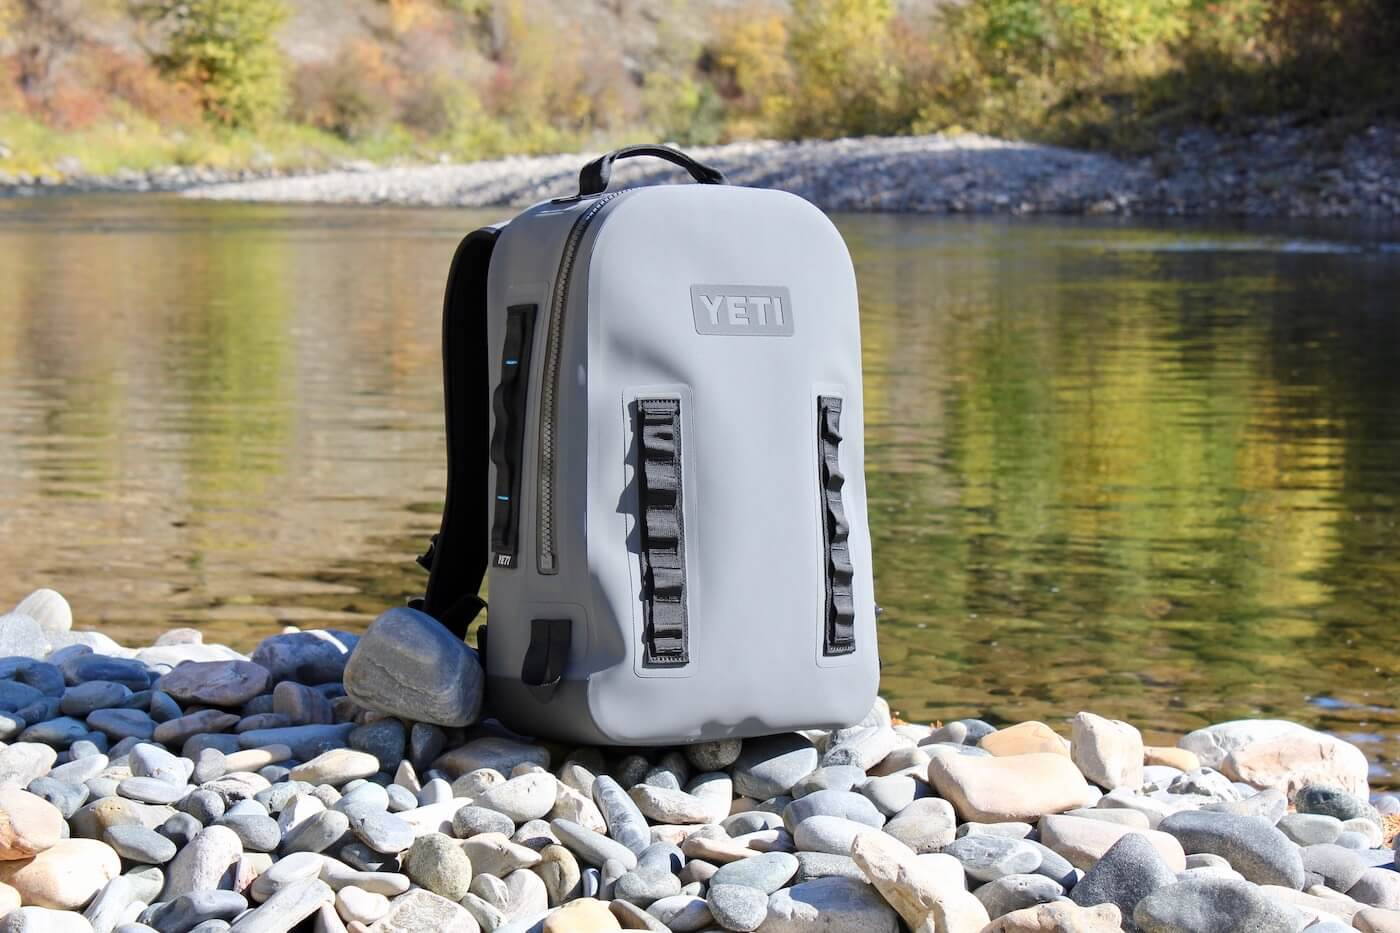 This photo shows the YETI Panga Backpack 28 on the side of a river.